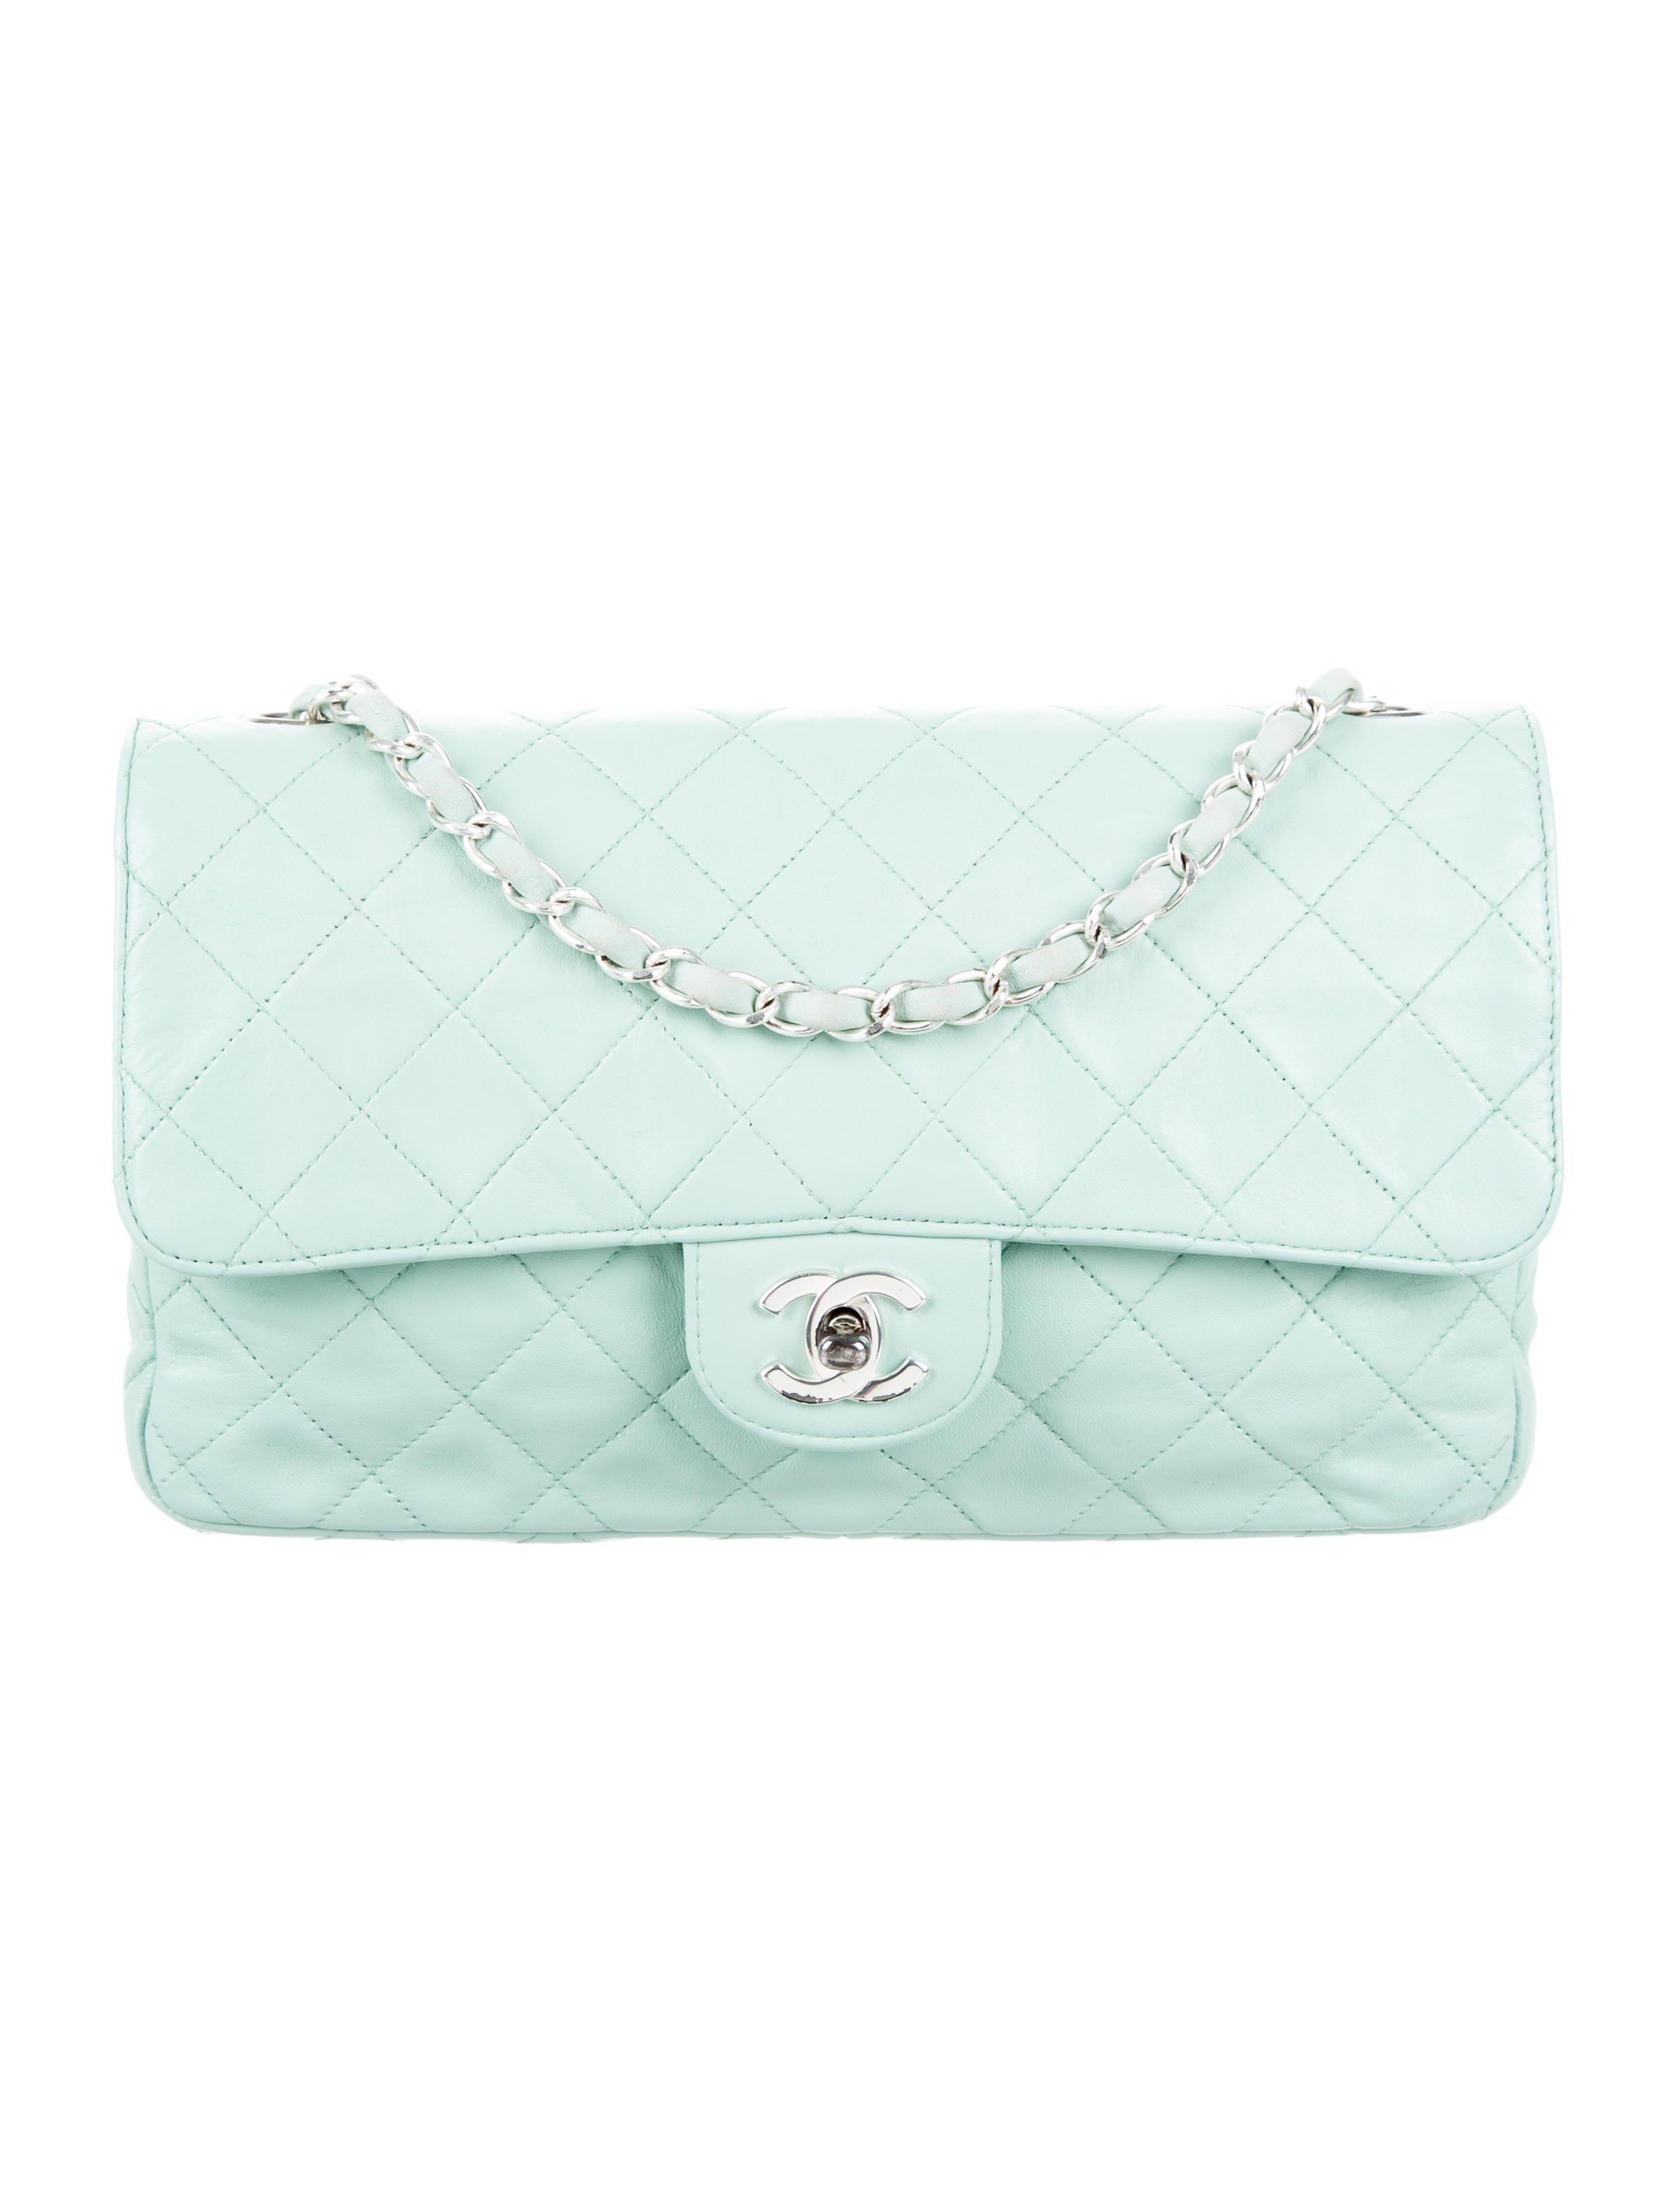 c18b5dc652aa Lyst - Chanel Quilted Single Flap Bag Mint in Metallic